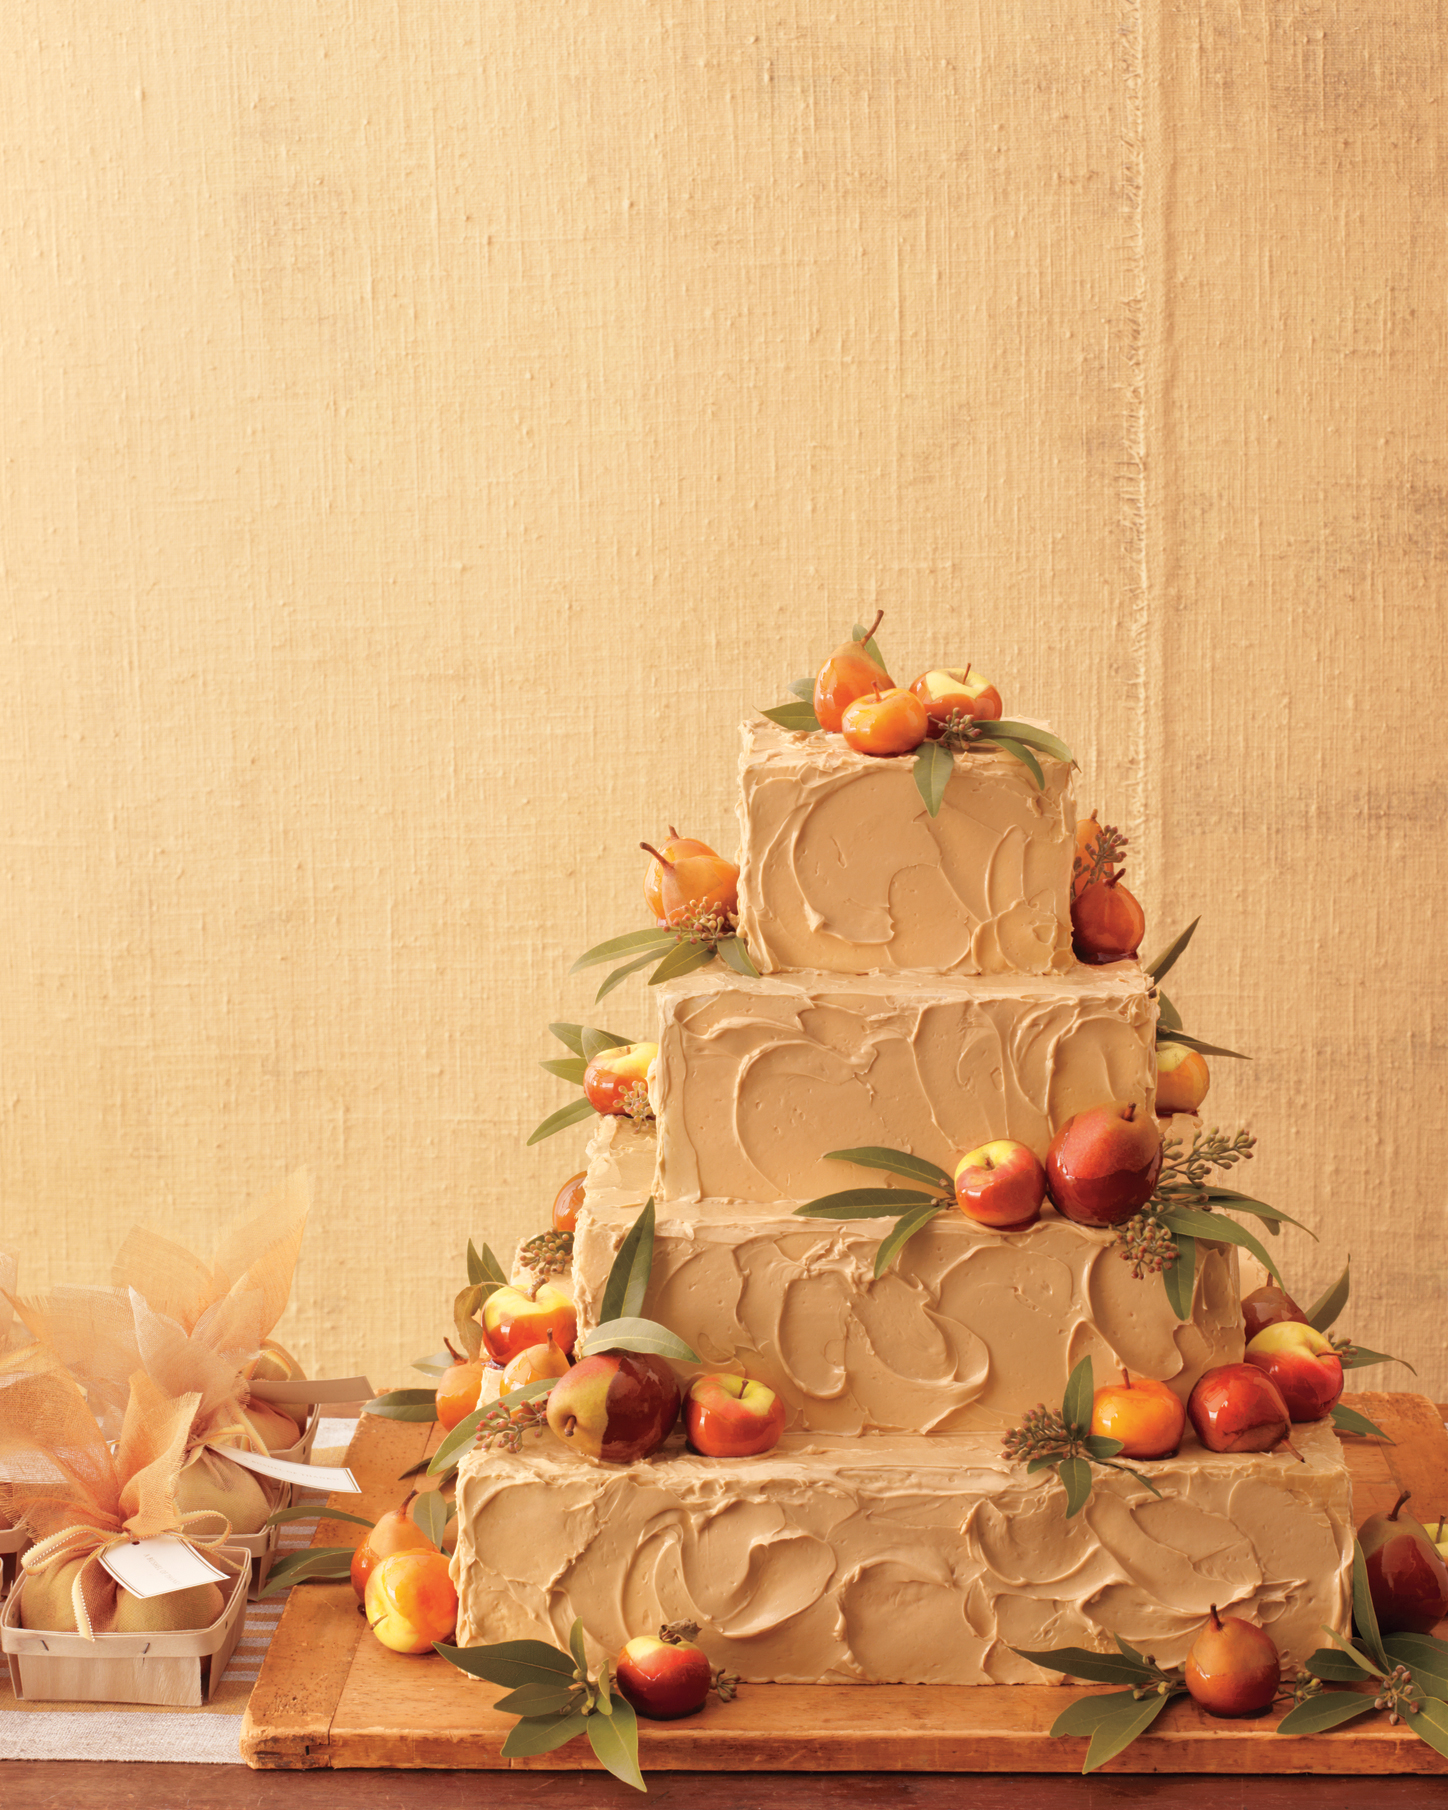 rustic-wedding-cake-mwd108277.jpg